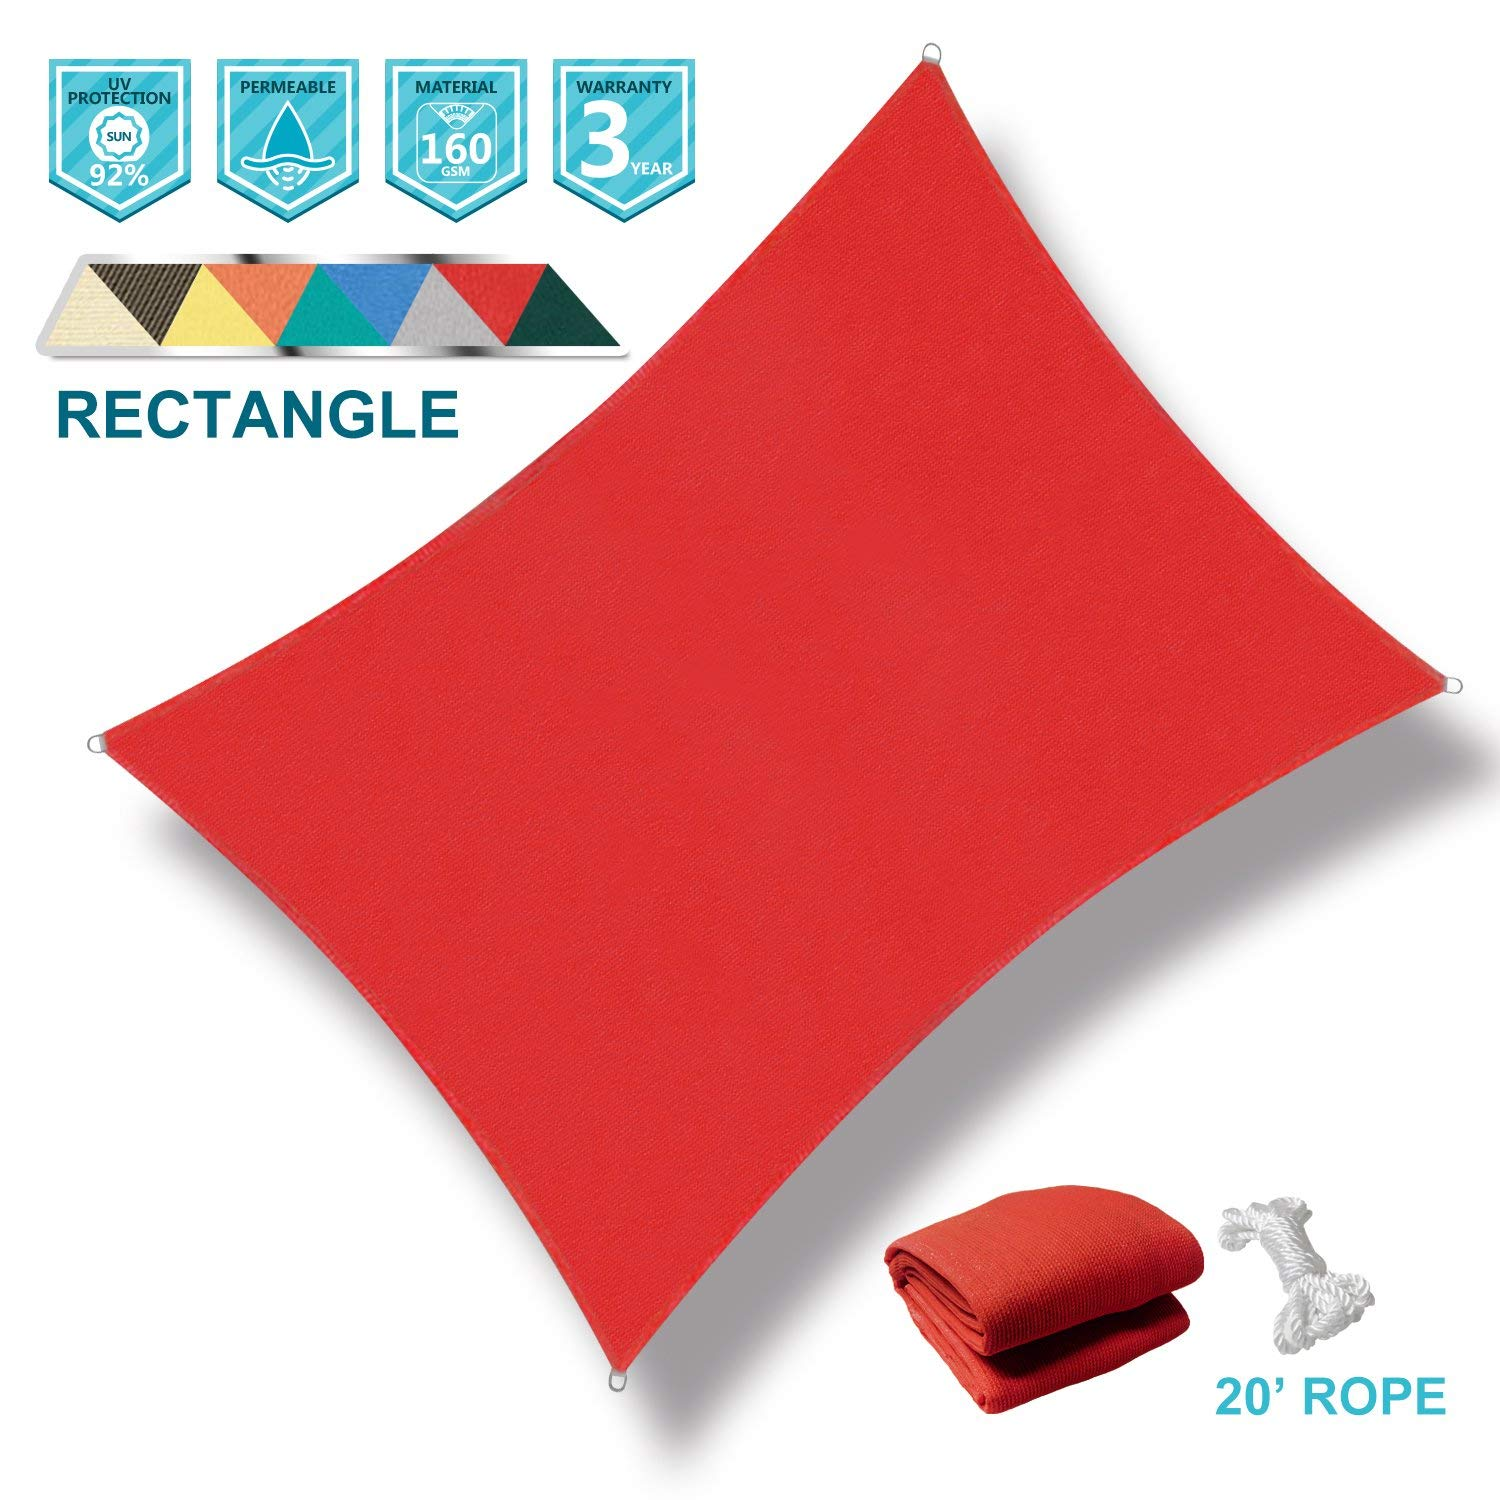 Coarbor 12' x 16' Rectangle Red UV Block Sun Shade Sail Perfect for Patio Outdoor Garden